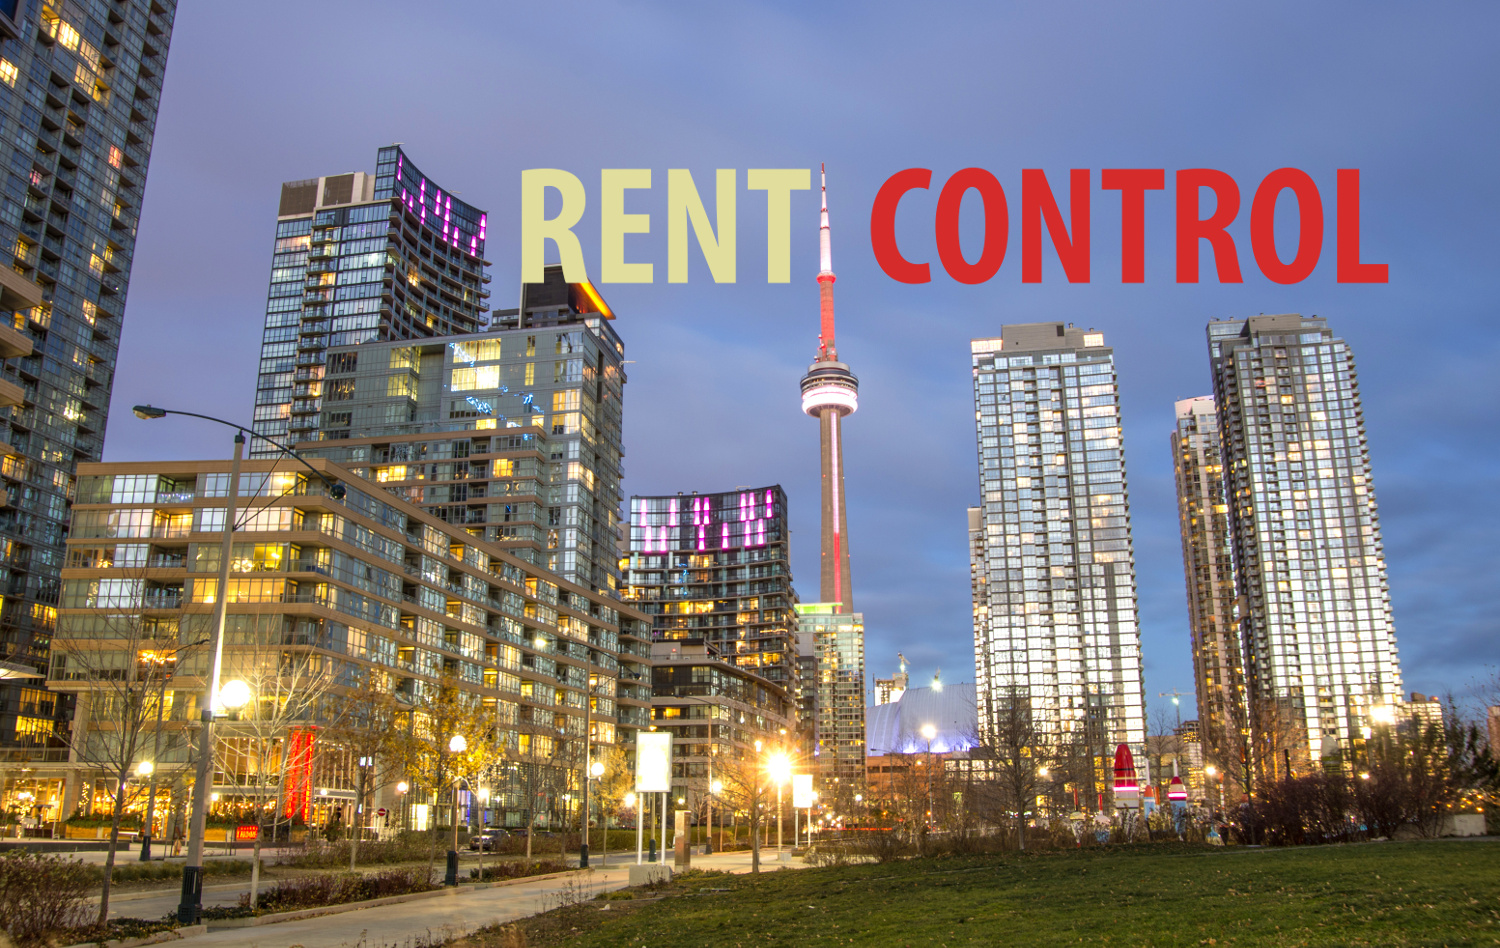 Ontario Government to allow landlords to increase rent by highest amount since 2013